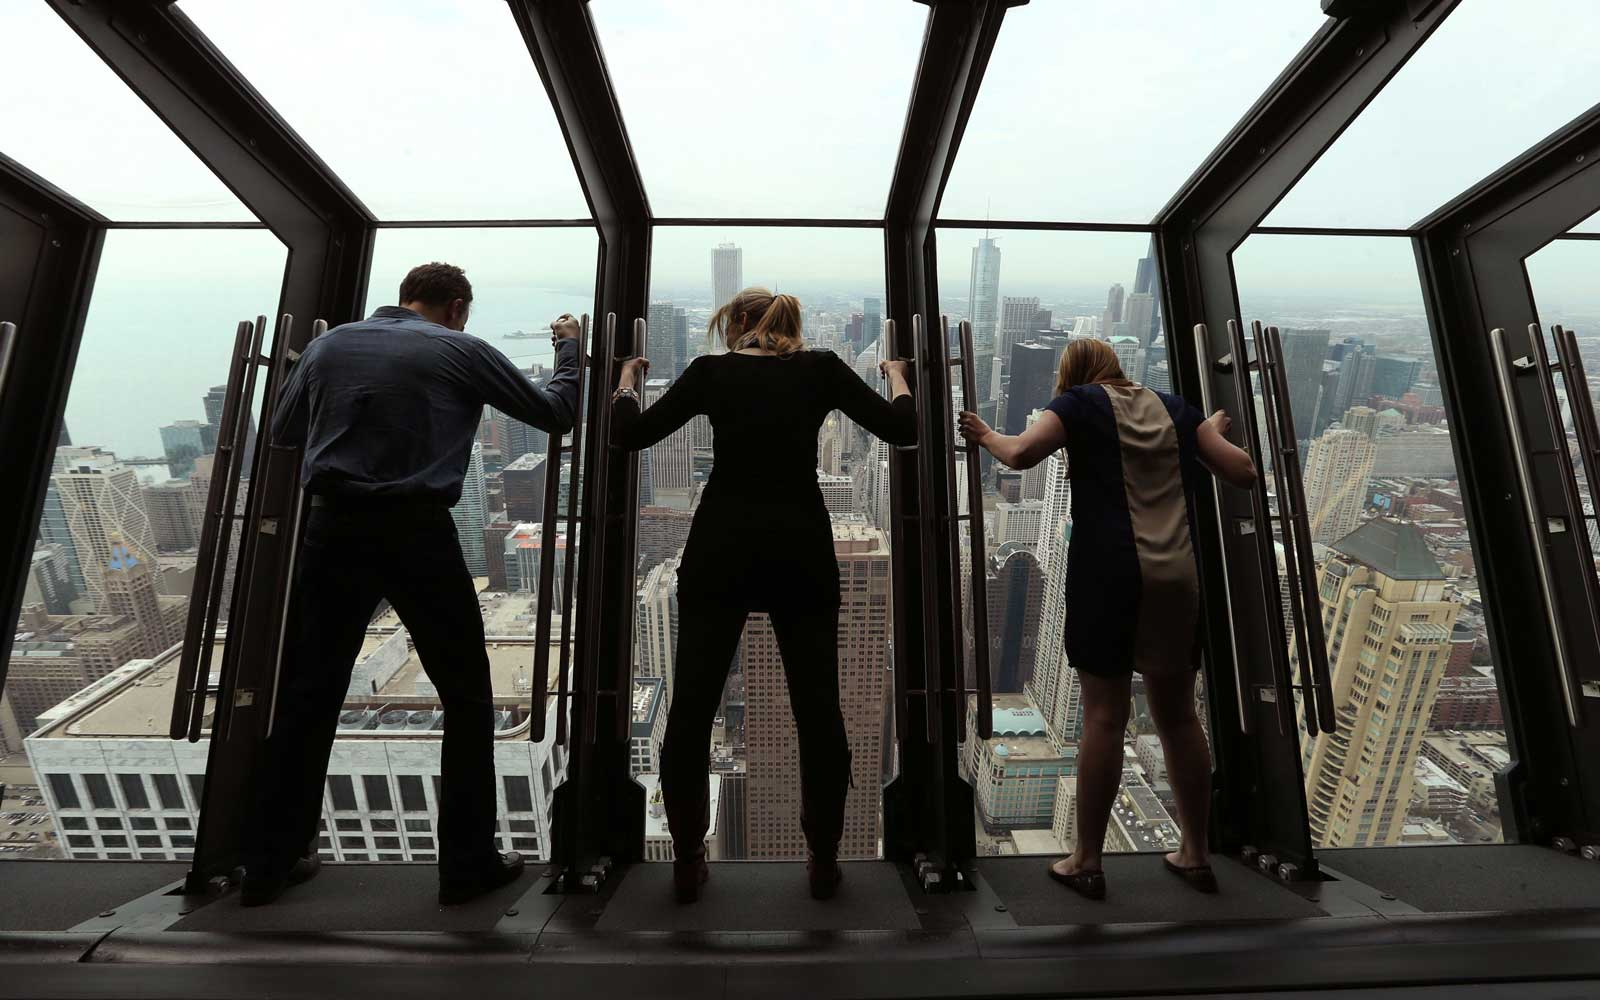 Hancock's new 'Tilt!' viewing platform puts you over the edge in Chicago, Illinois